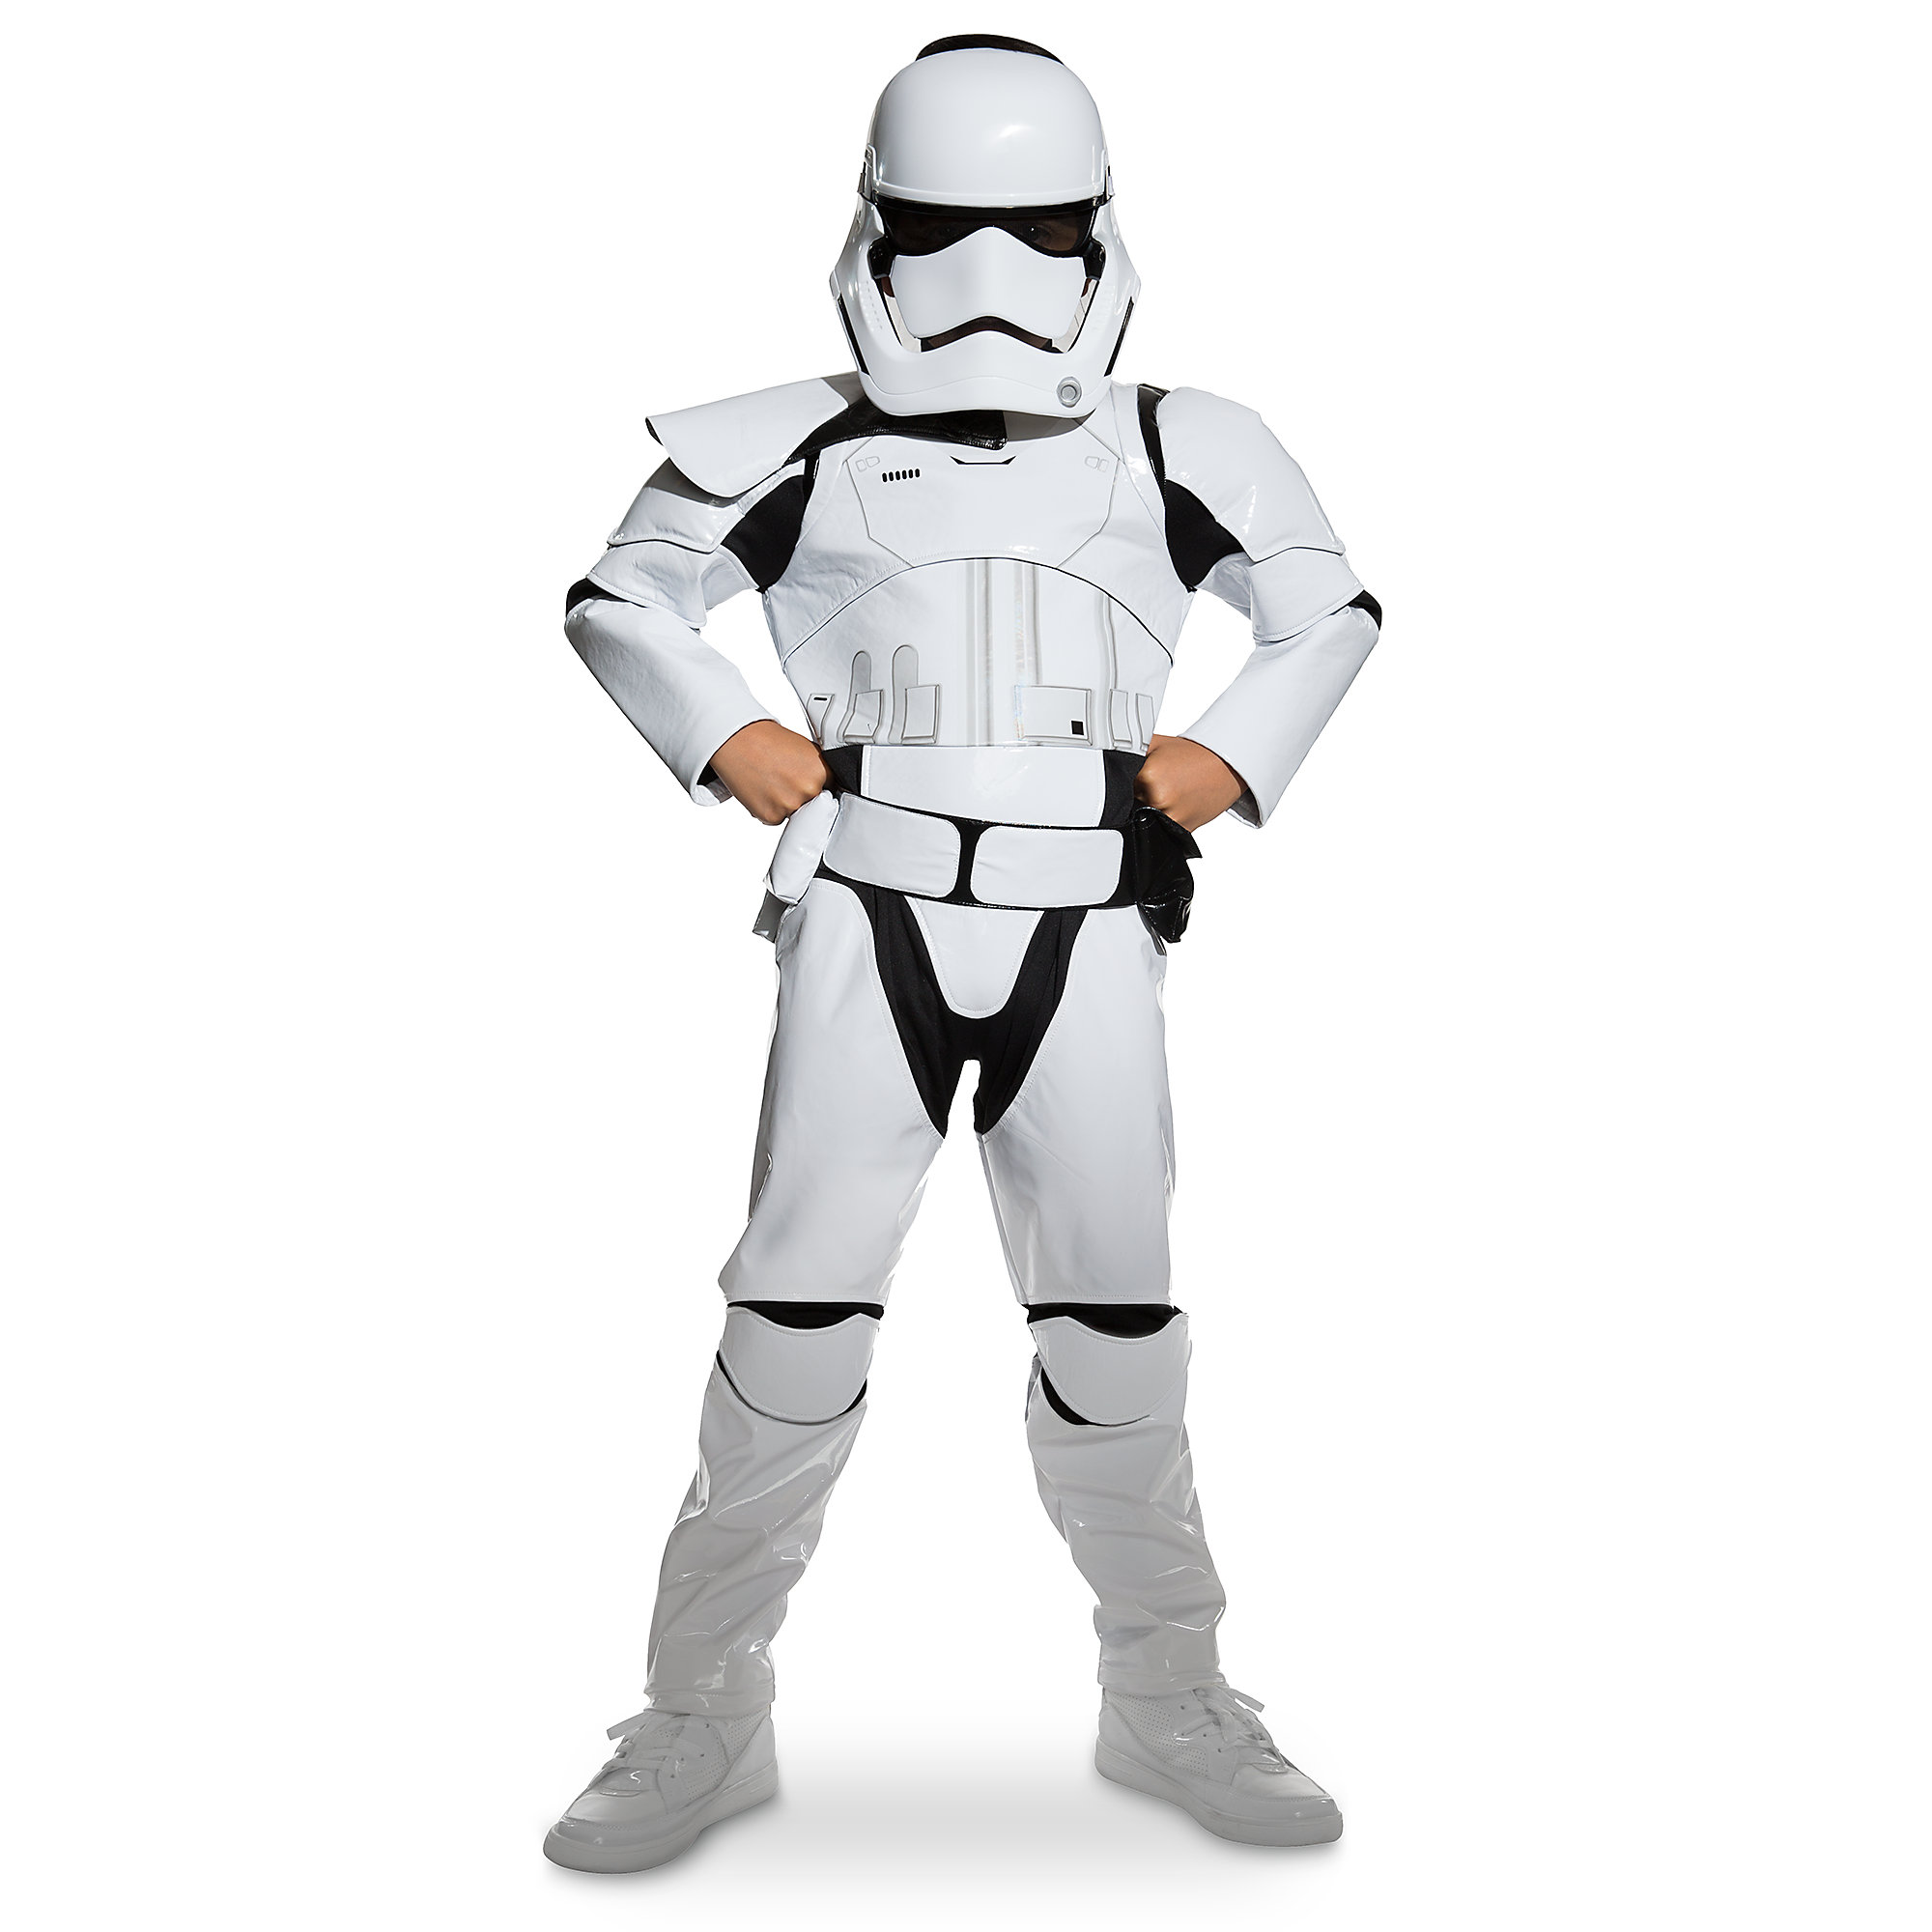 Product Image of Stormtrooper Costume for Kids - Star Wars The Force Awakens # 1  sc 1 st  shopDisney & Stormtrooper Costume for Kids - Star Wars: The Force Awakens ...